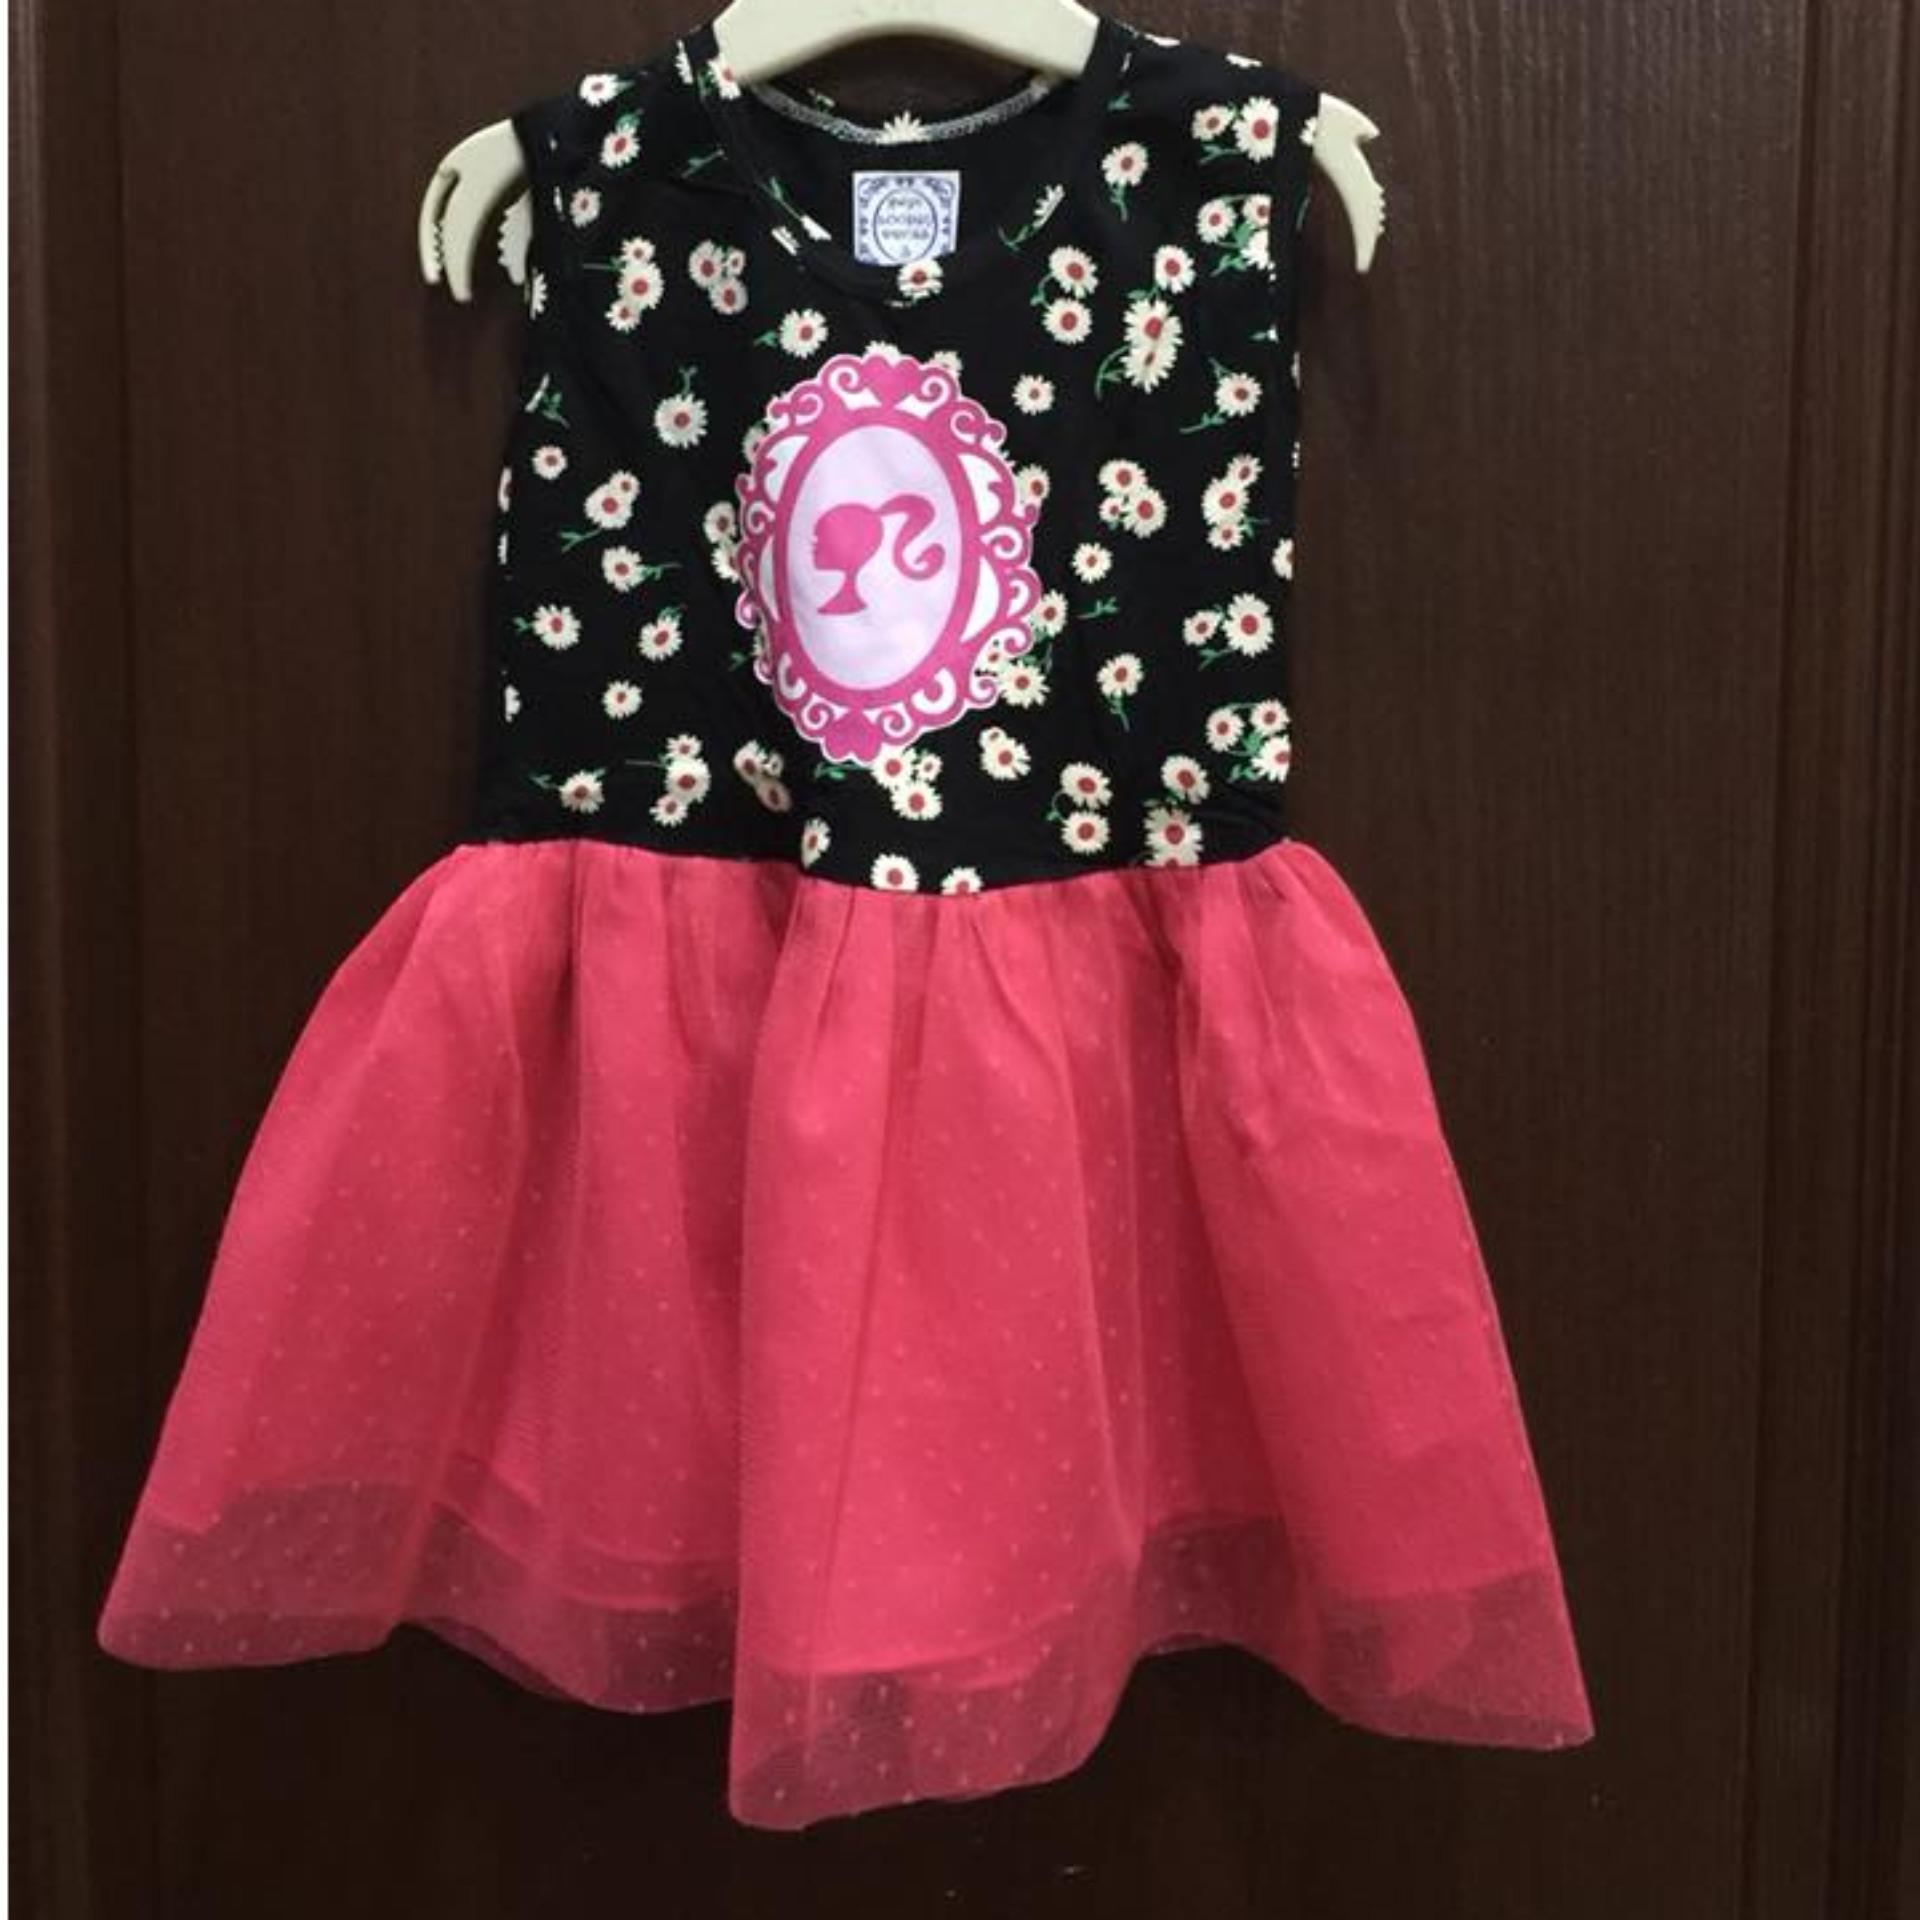 Girls Dresses for sale Dress for Girls online brands prices